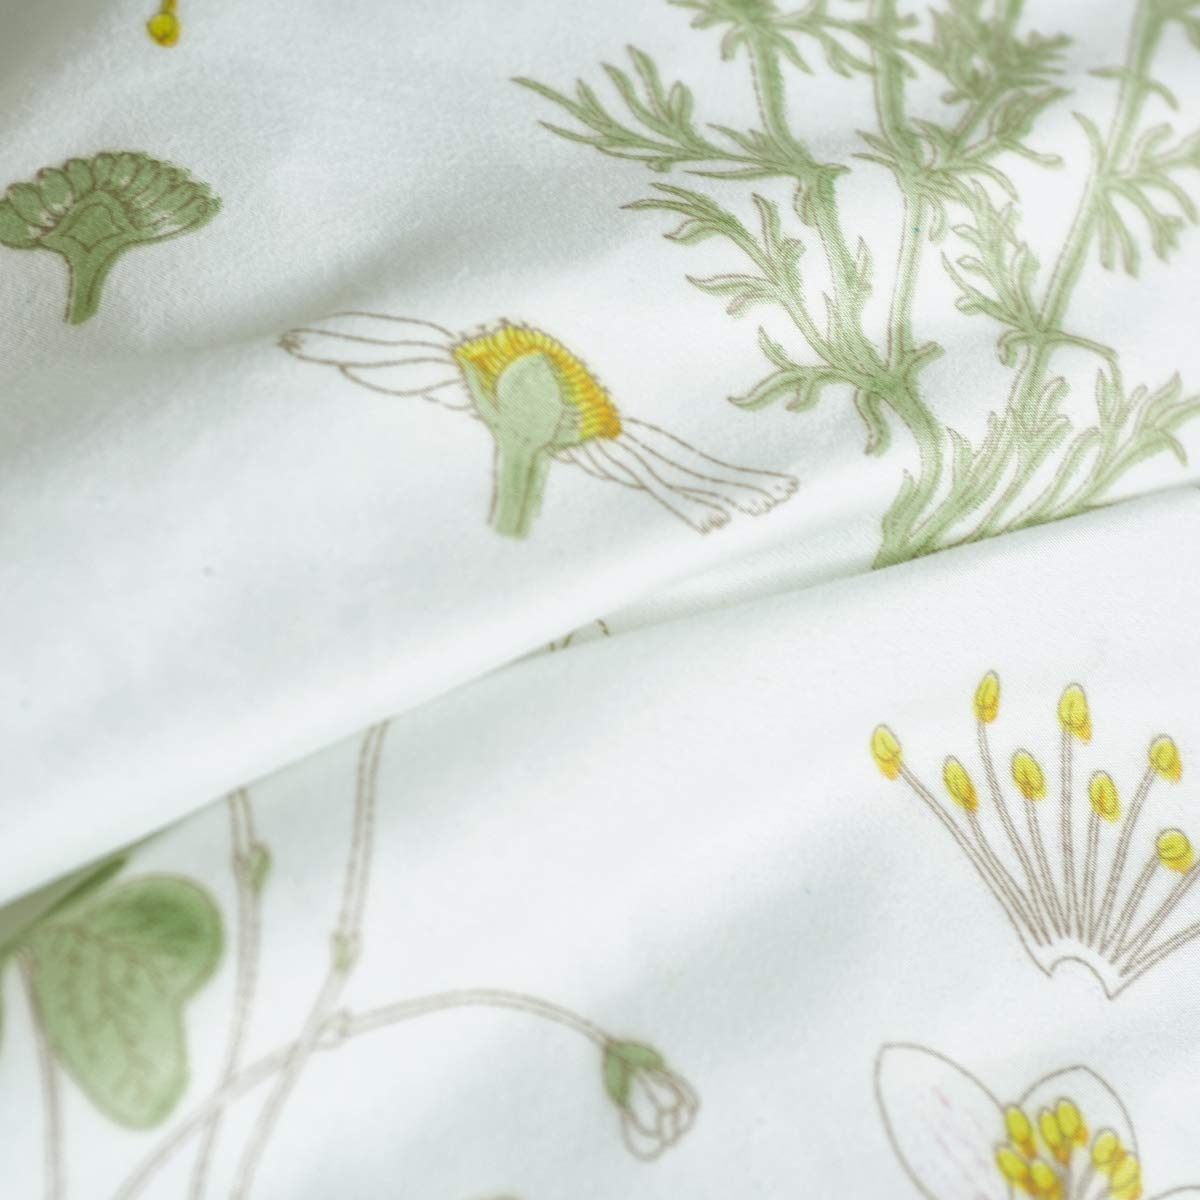 3 PCs Botanical Duvet Cover Set, Modern Flowers Printed Boho Comforter Cover Bedding Sets with Zipper Ties by Smoofy (Image #6)